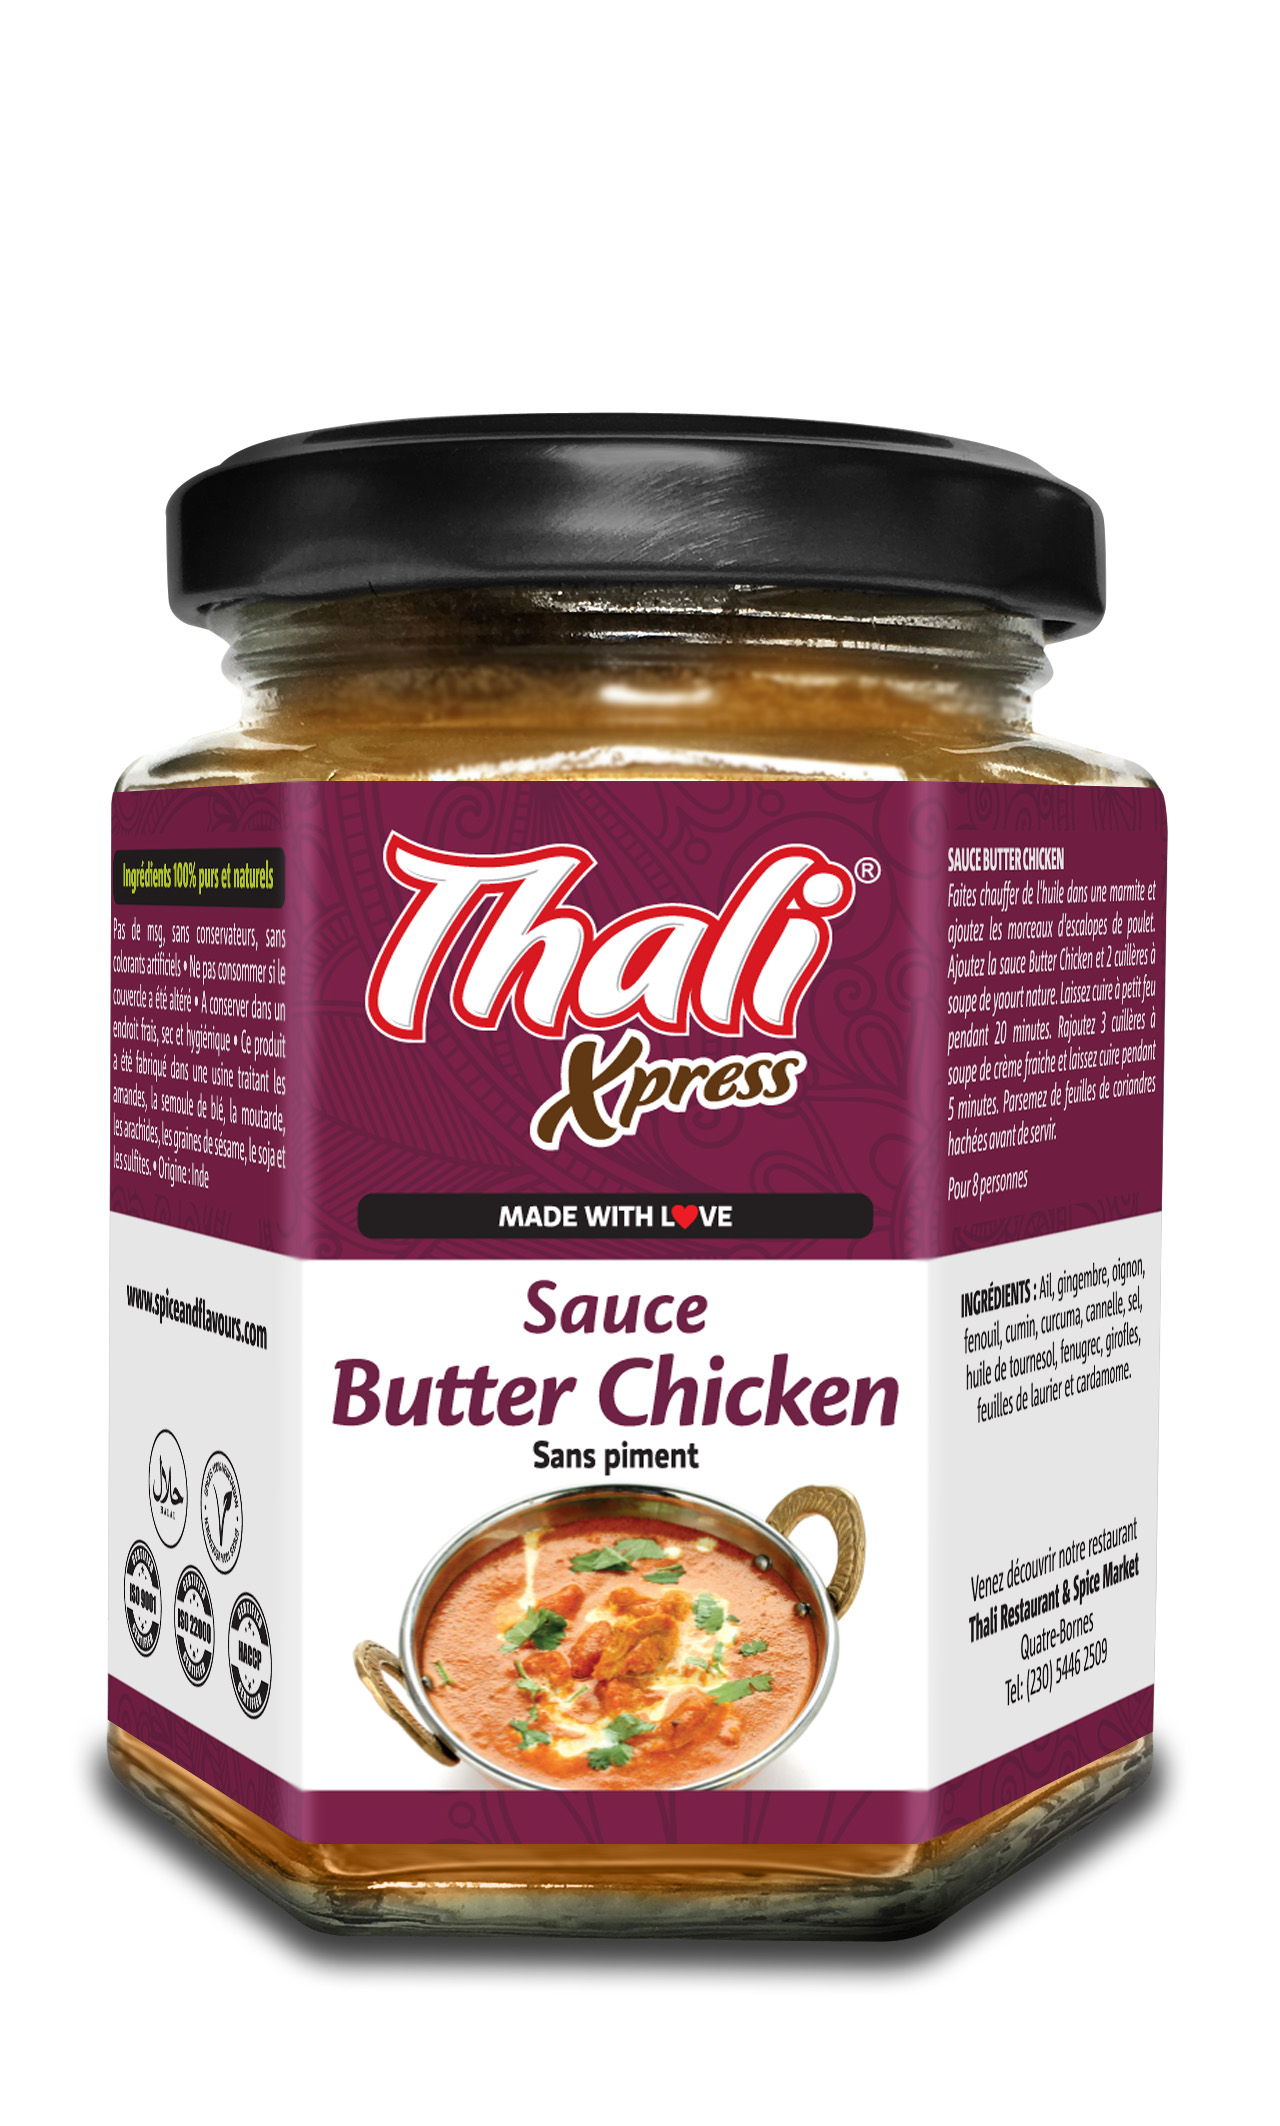 Sauce Butter Chicken Image